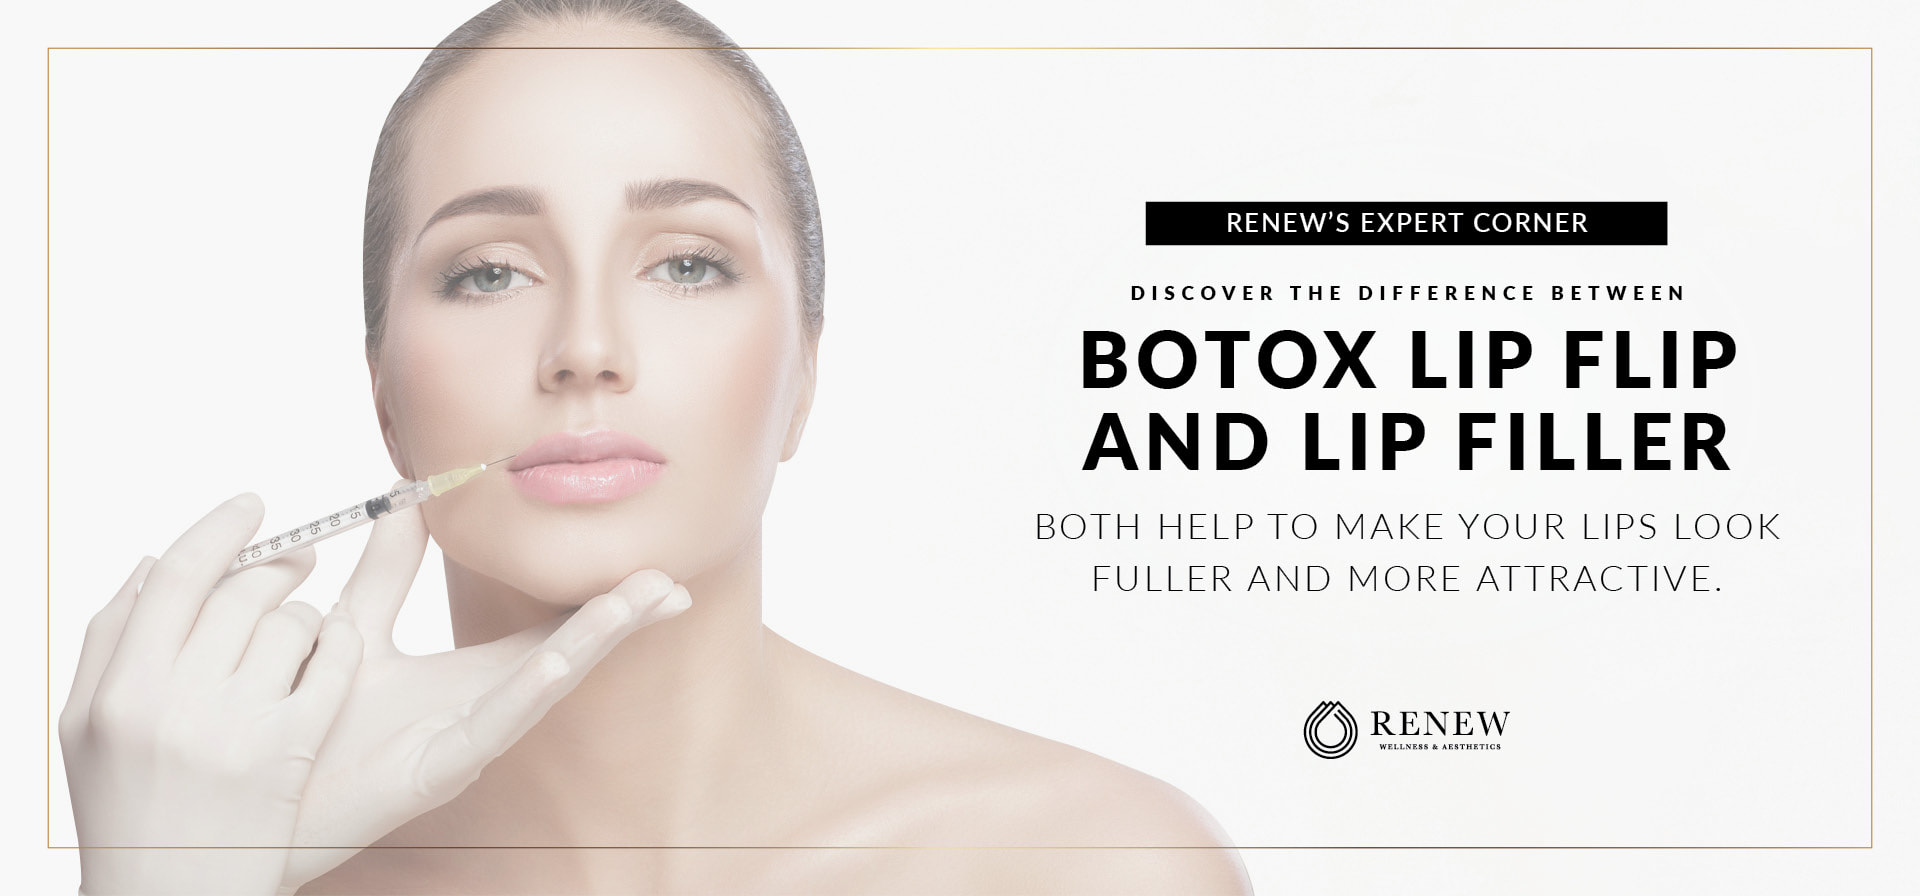 The Benefits of Botox Lip Flip and Lip Filler